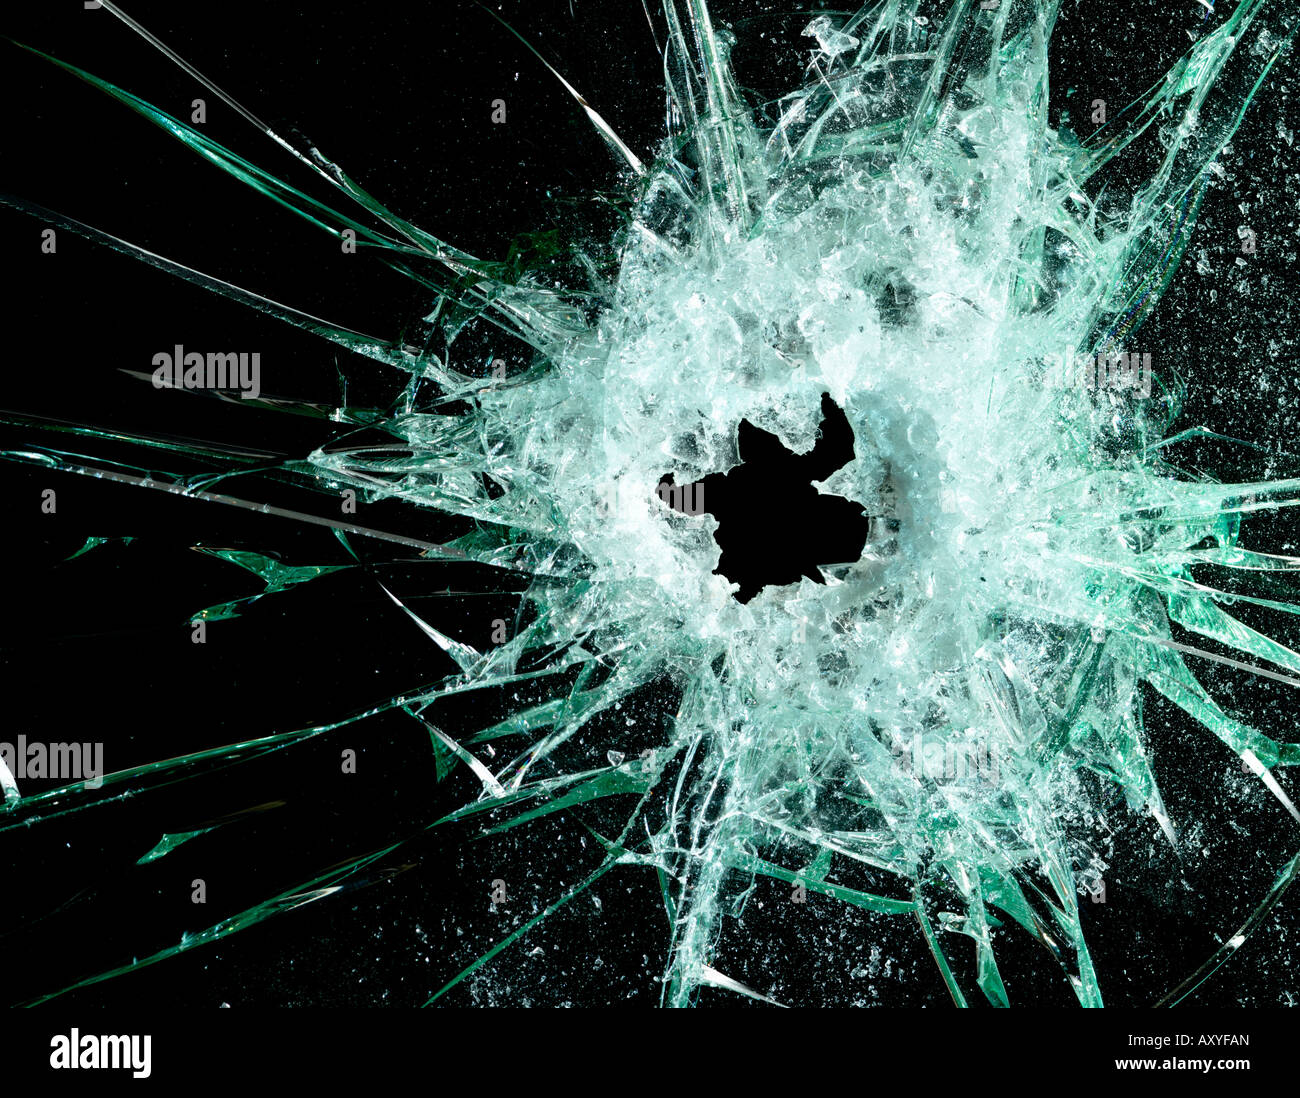 Glass with bullet hole against a black background - Stock Image